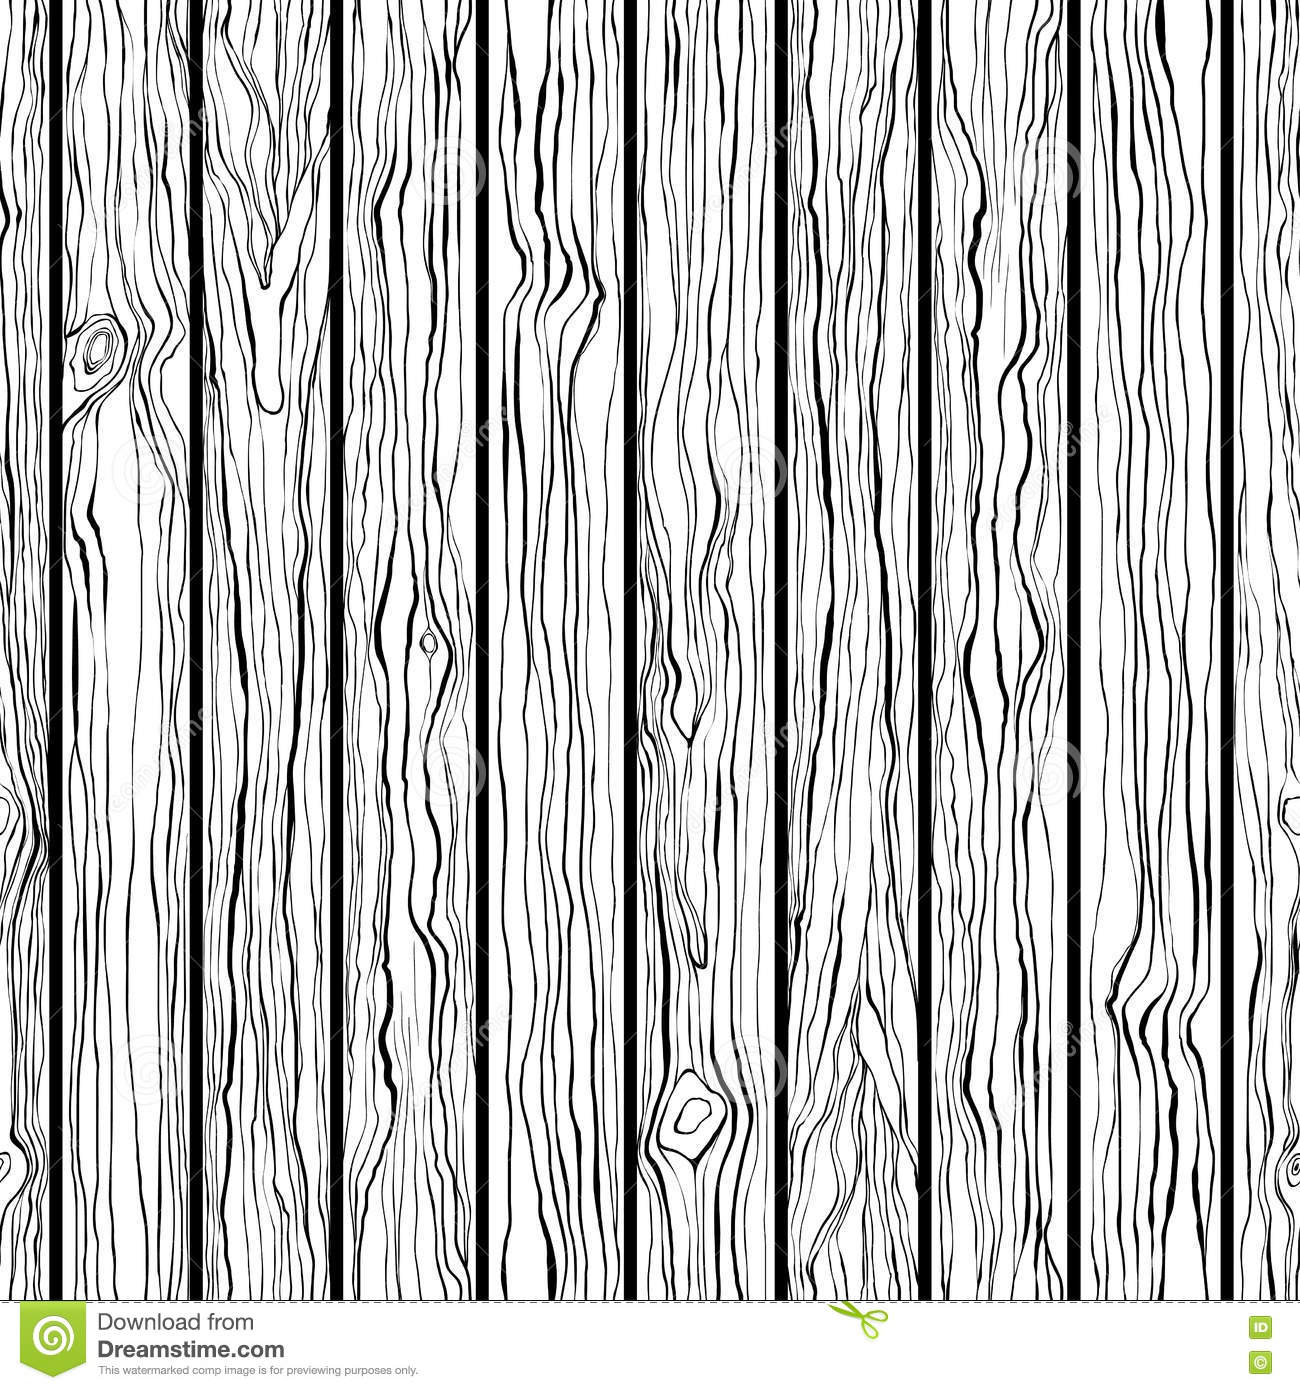 Uncategorized How To Draw Wood Texture wood texture seamless pattern black and white hand draw stock draw